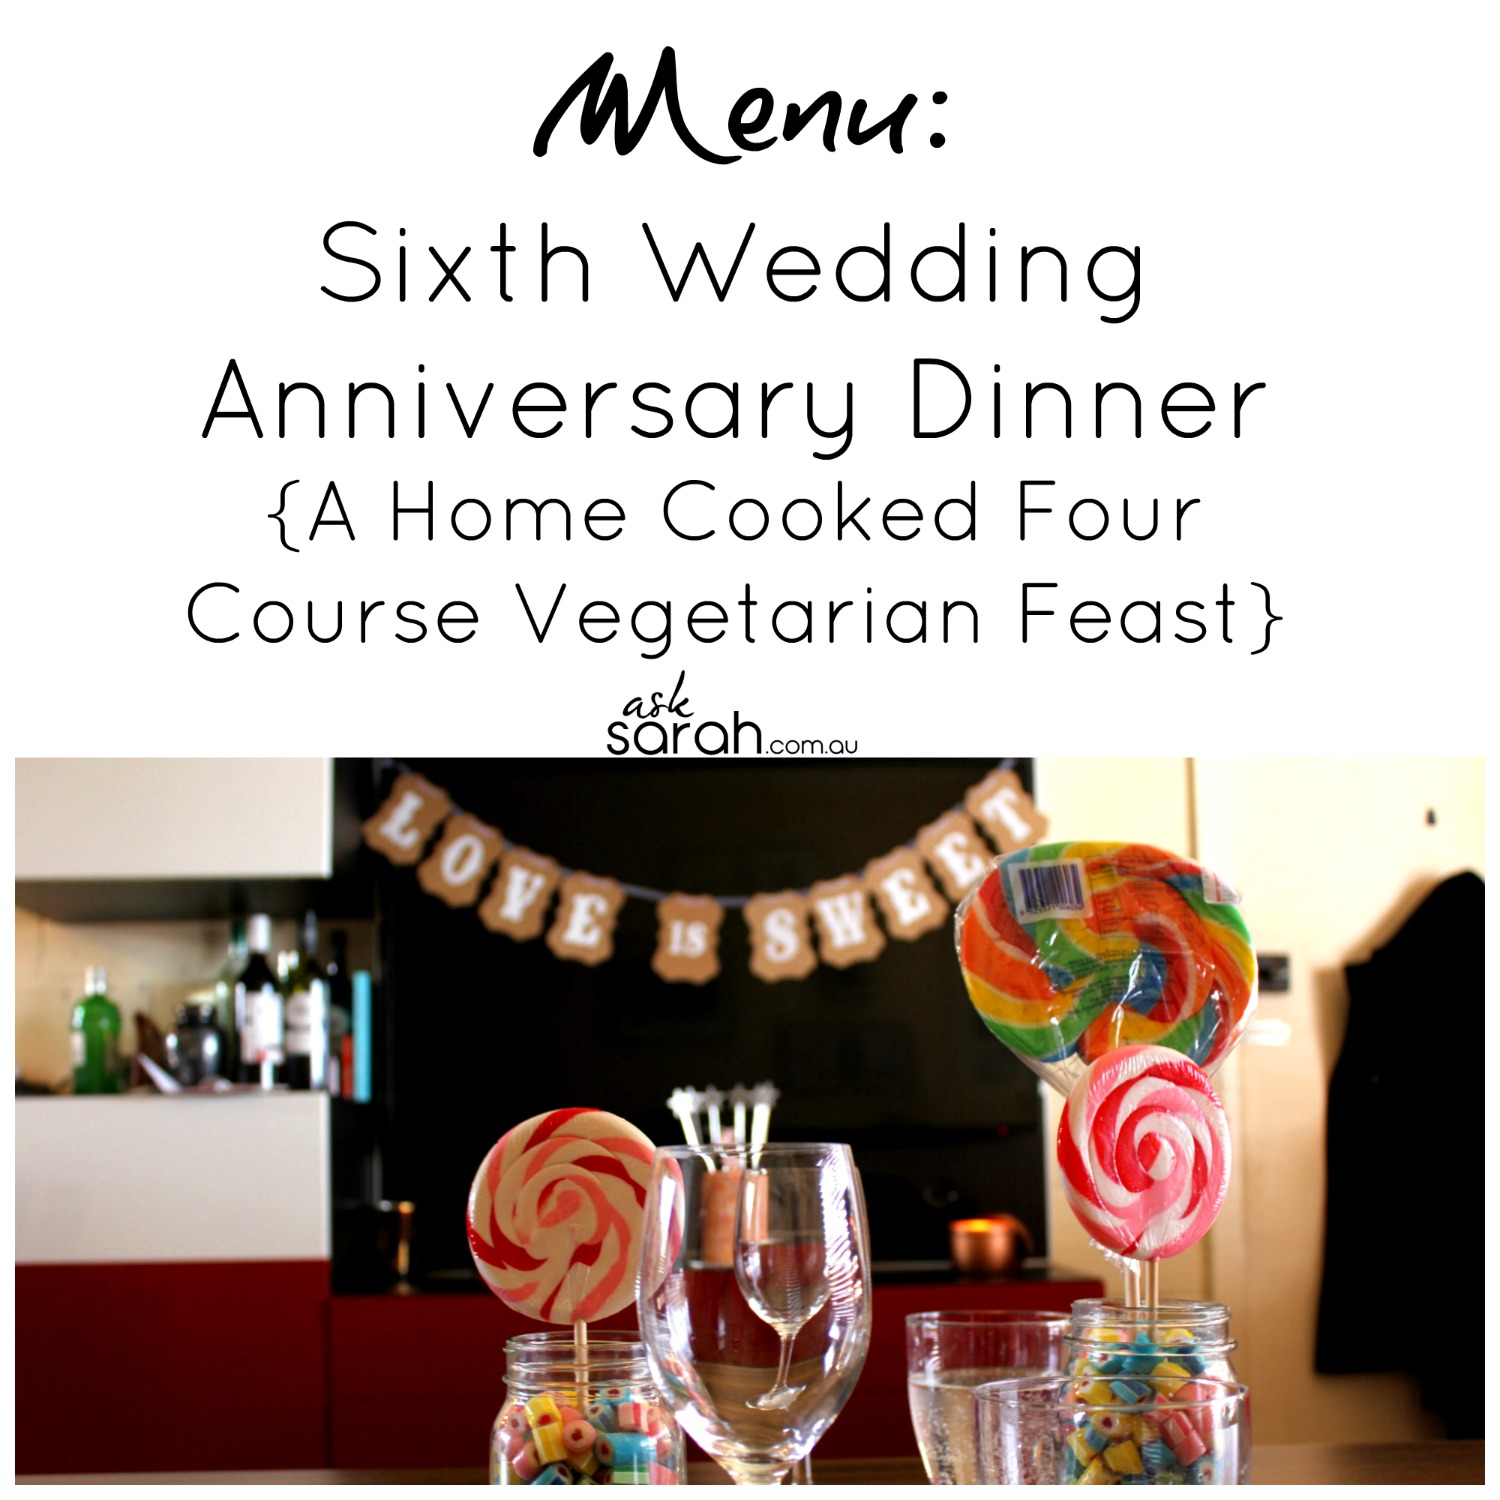 Menu: Sixth Wedding Anniversary Dinner {A Home Cooked Four Course Vegetarian Feast}